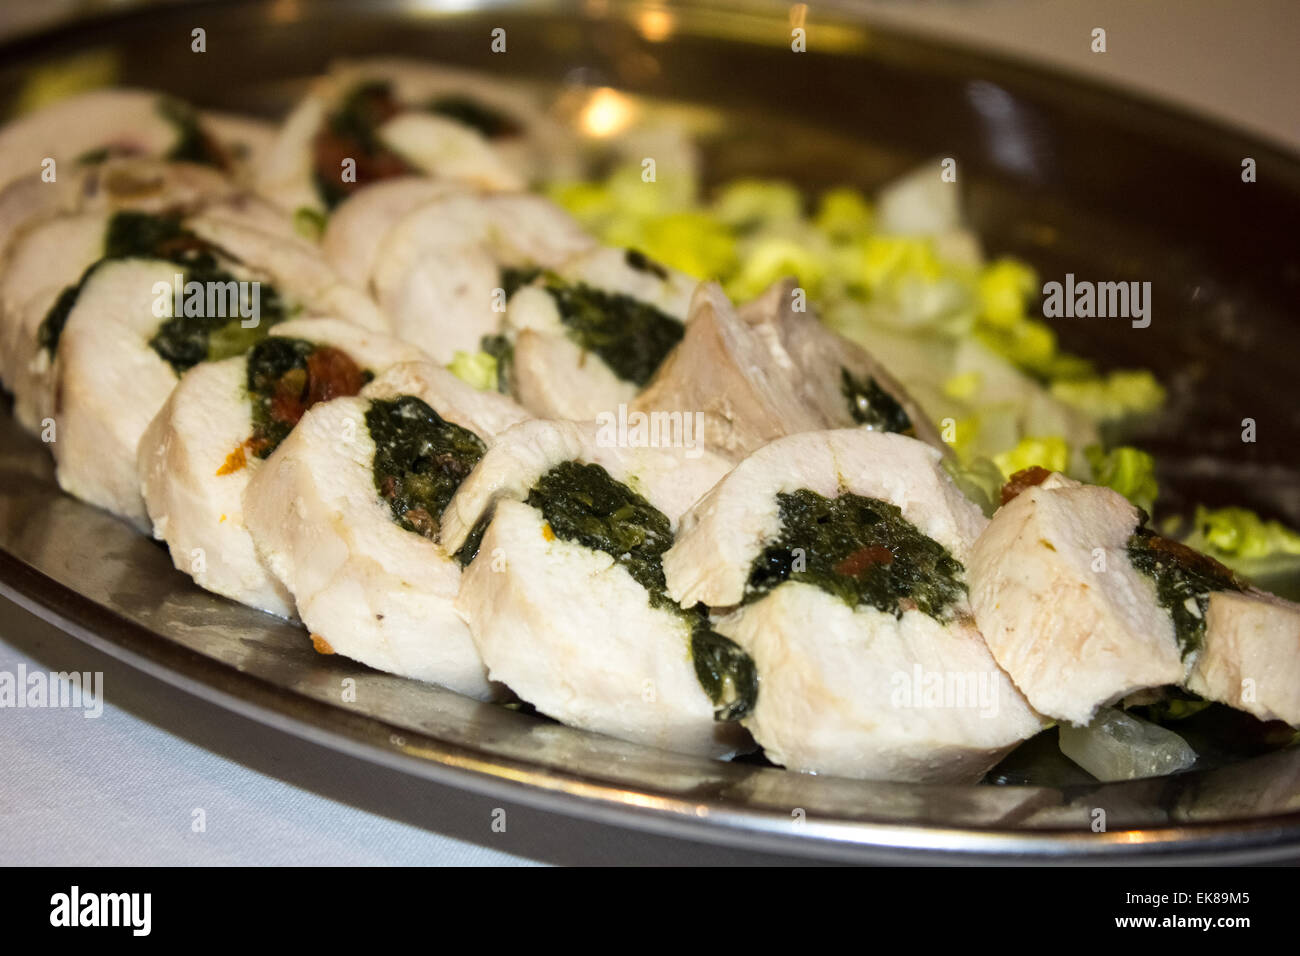 Chicken canapés stuffed with spinach and cranberry sauce with lettuce on the side on a plate at a VIP area - Stock Image